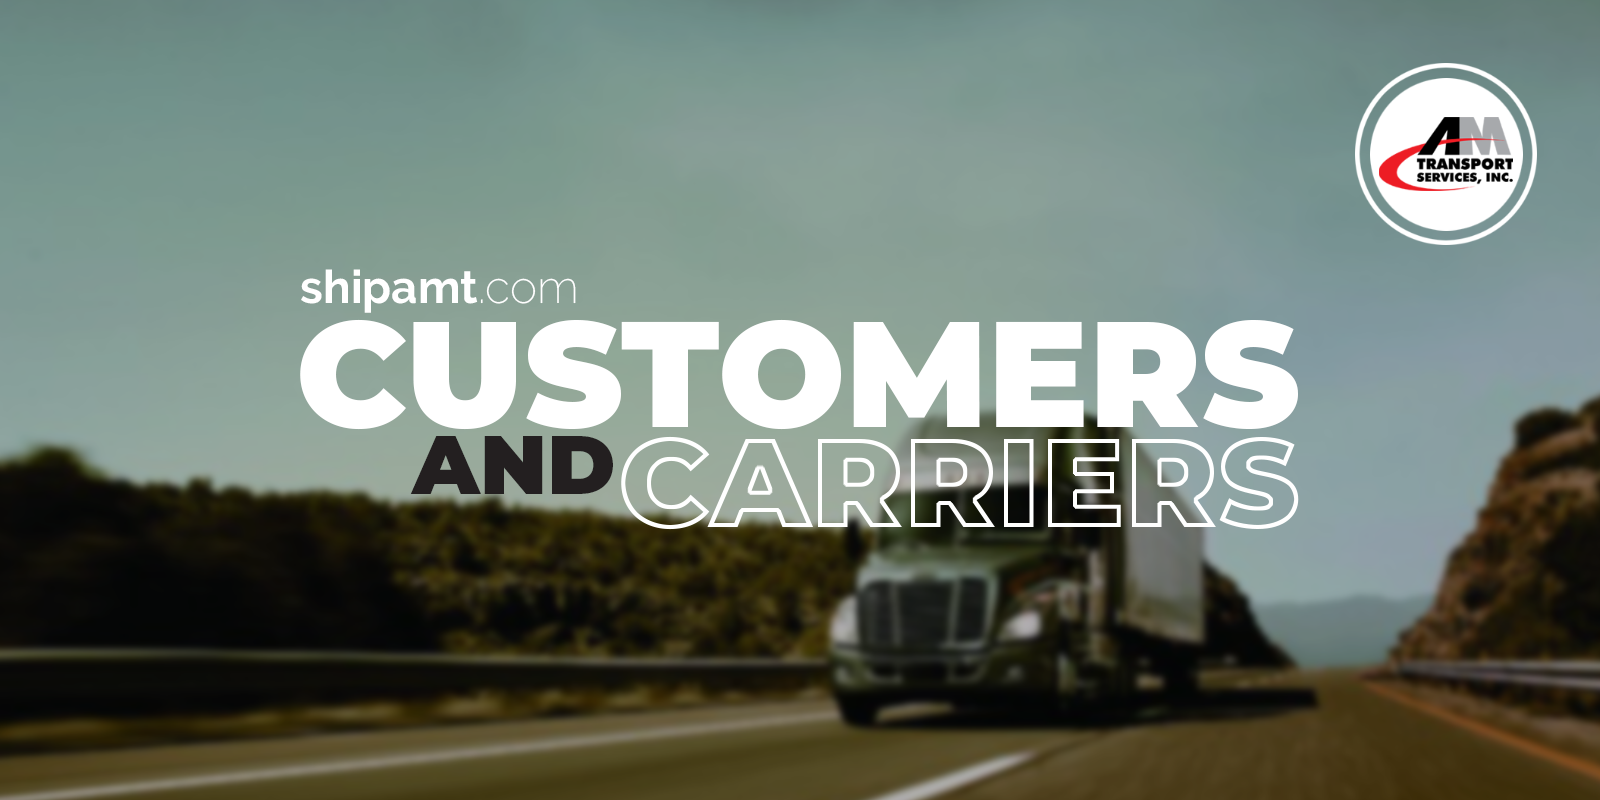 Customers and Carriers are important